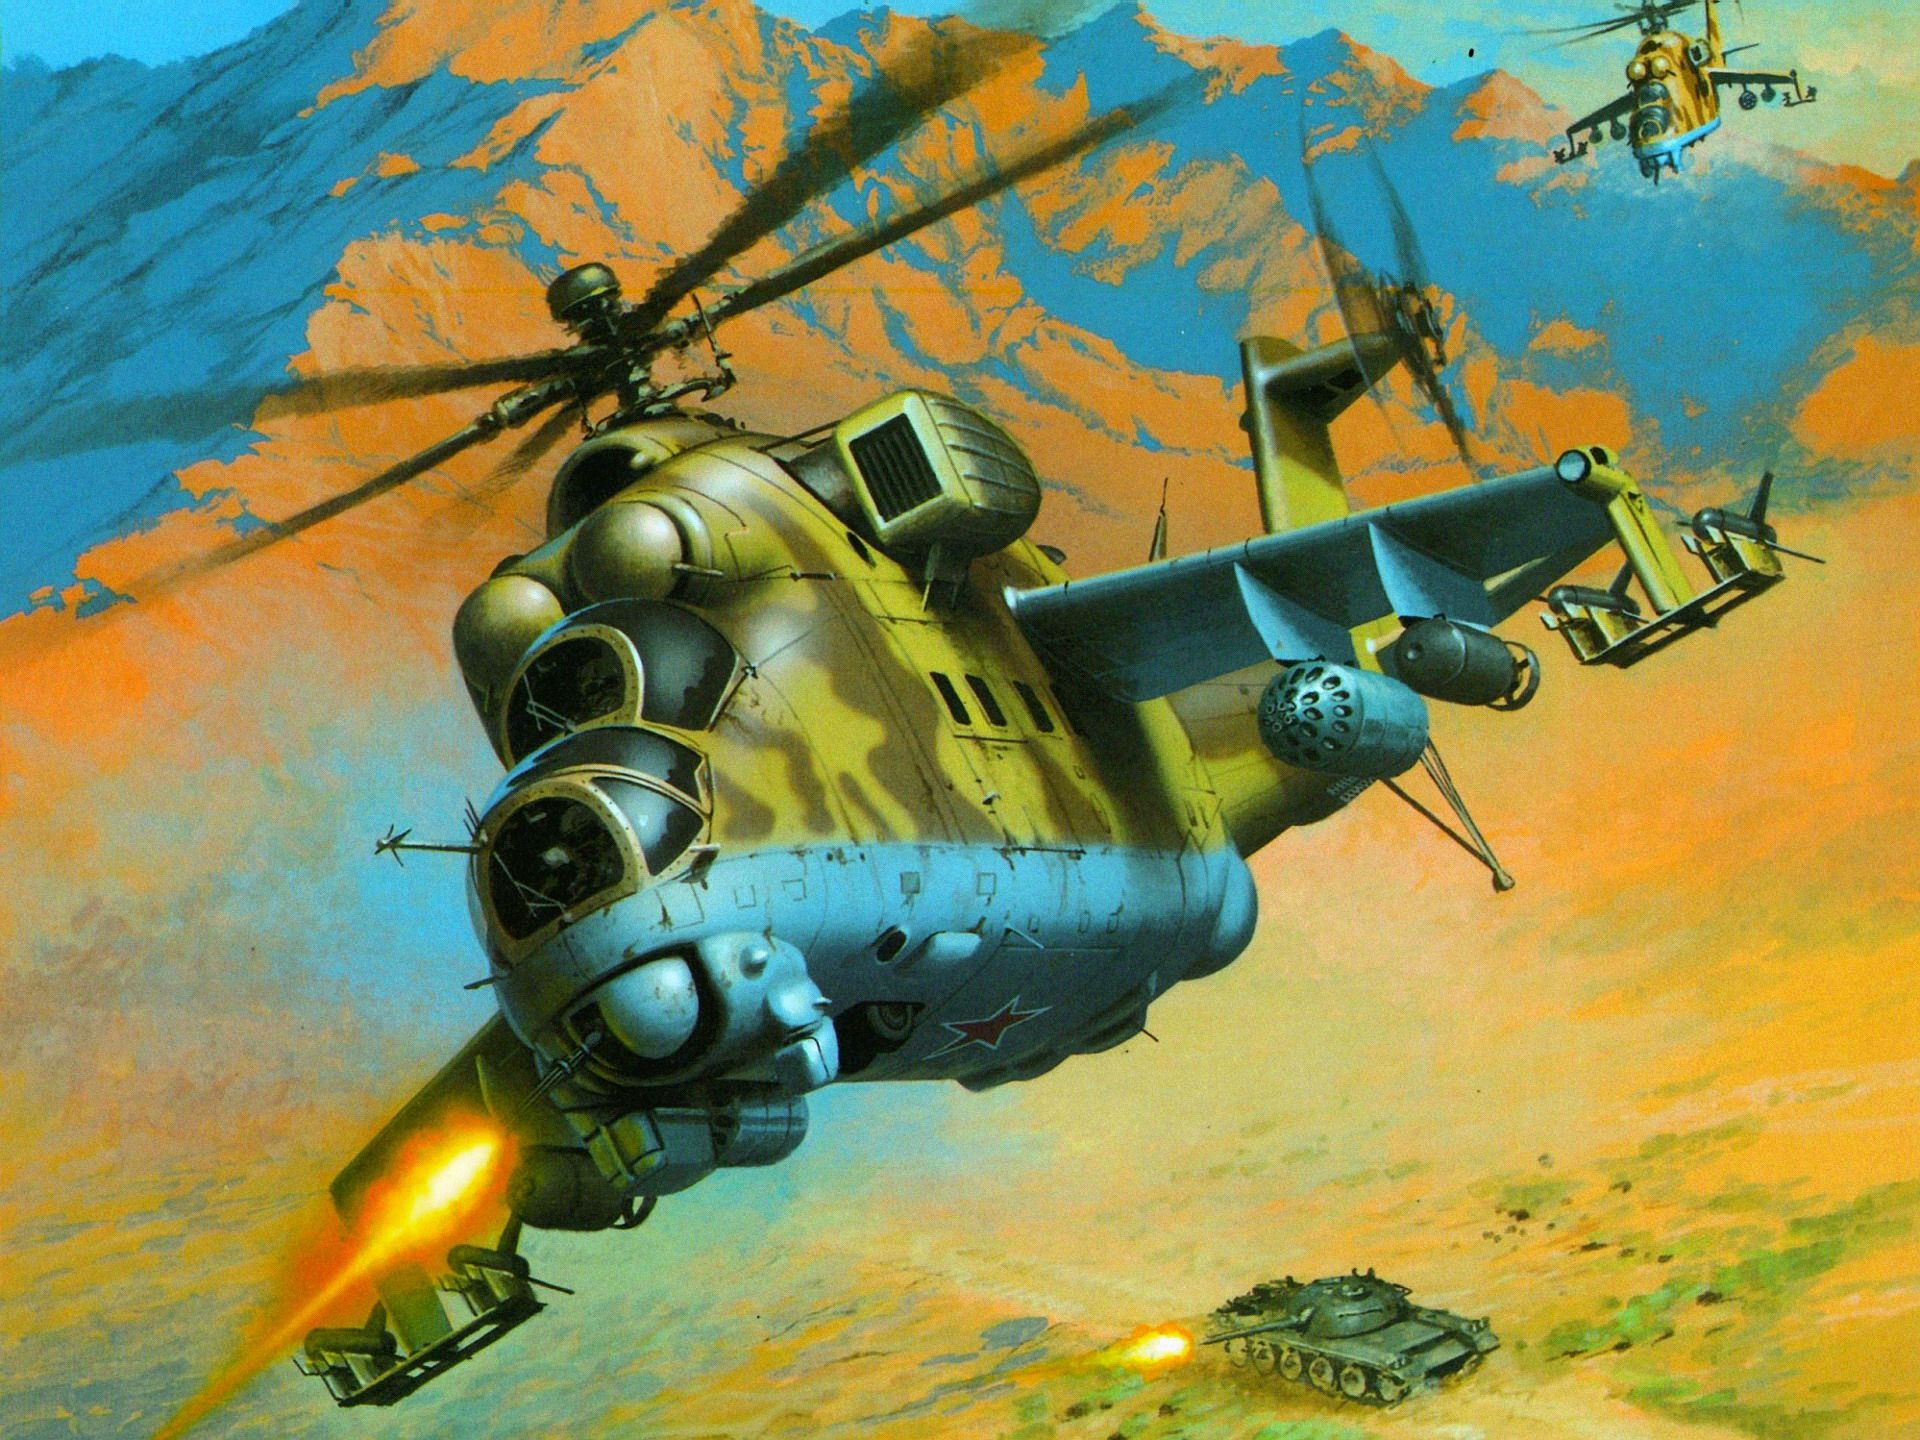 chinook helicopter vietnam with 322077810829432286 on Operation Frequent Wind moreover Who Won The Vietnam War moreover Boeing CH 47 Chinook moreover History Unlimiteds moreover Ch 47d Chinook.